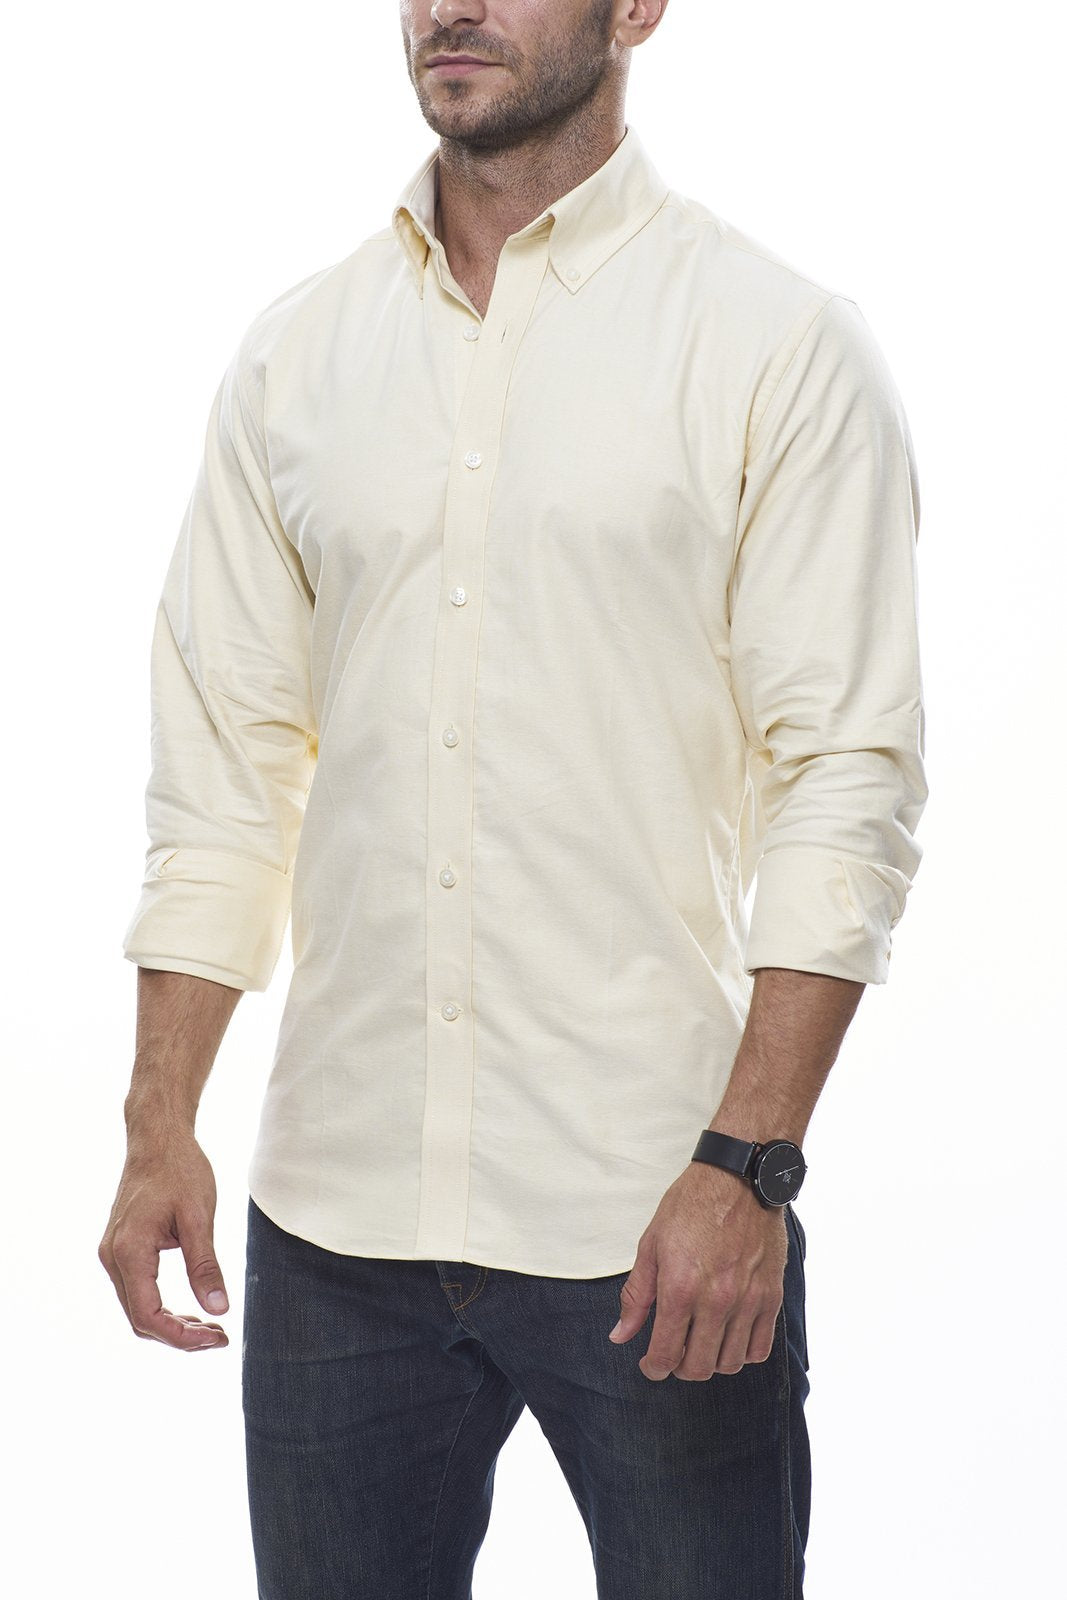 Lightweight Oxford in Yellow: Button-Down Collar, Long Sleeve